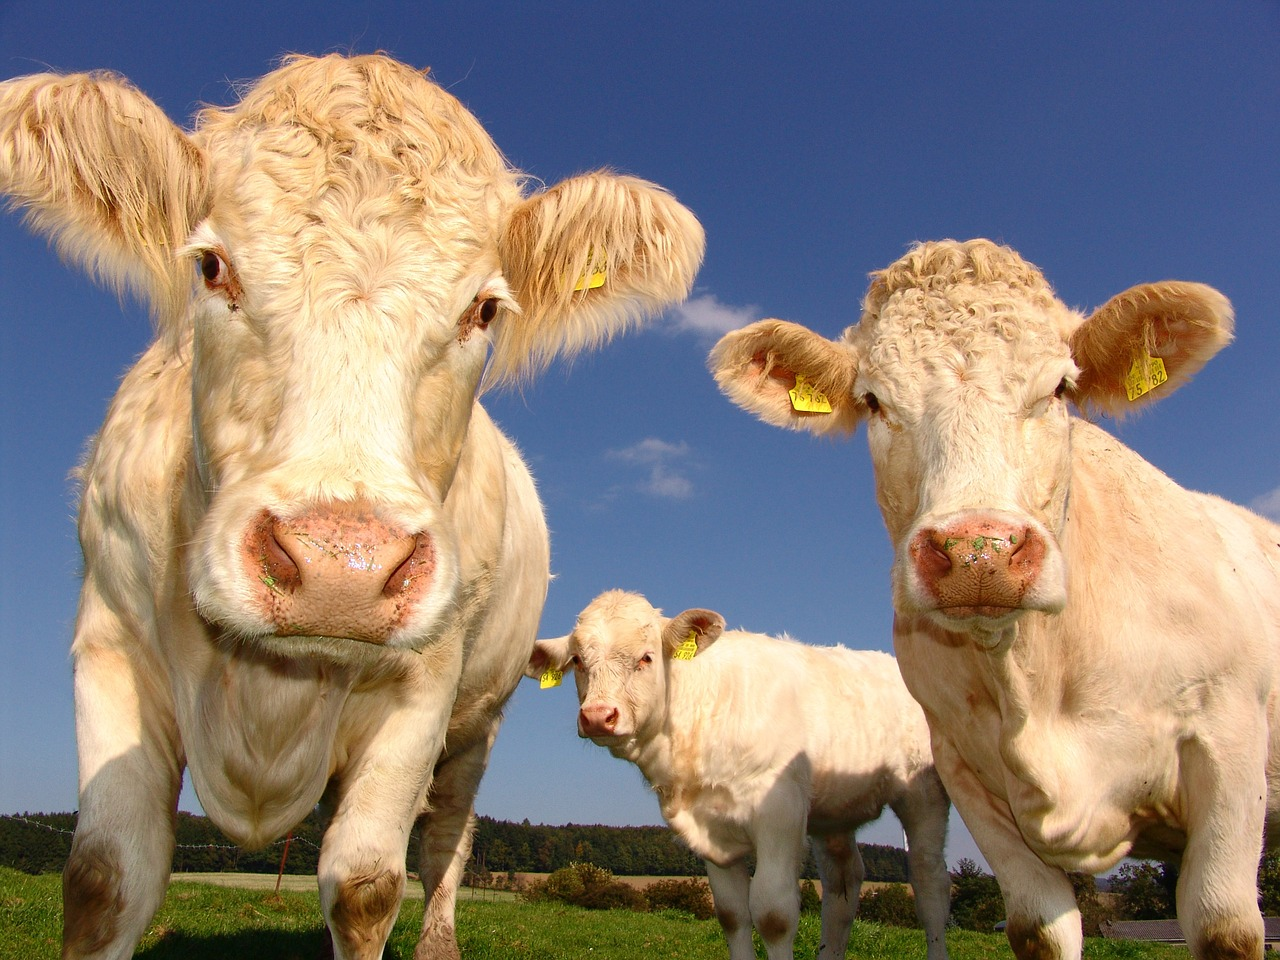 A group of cows